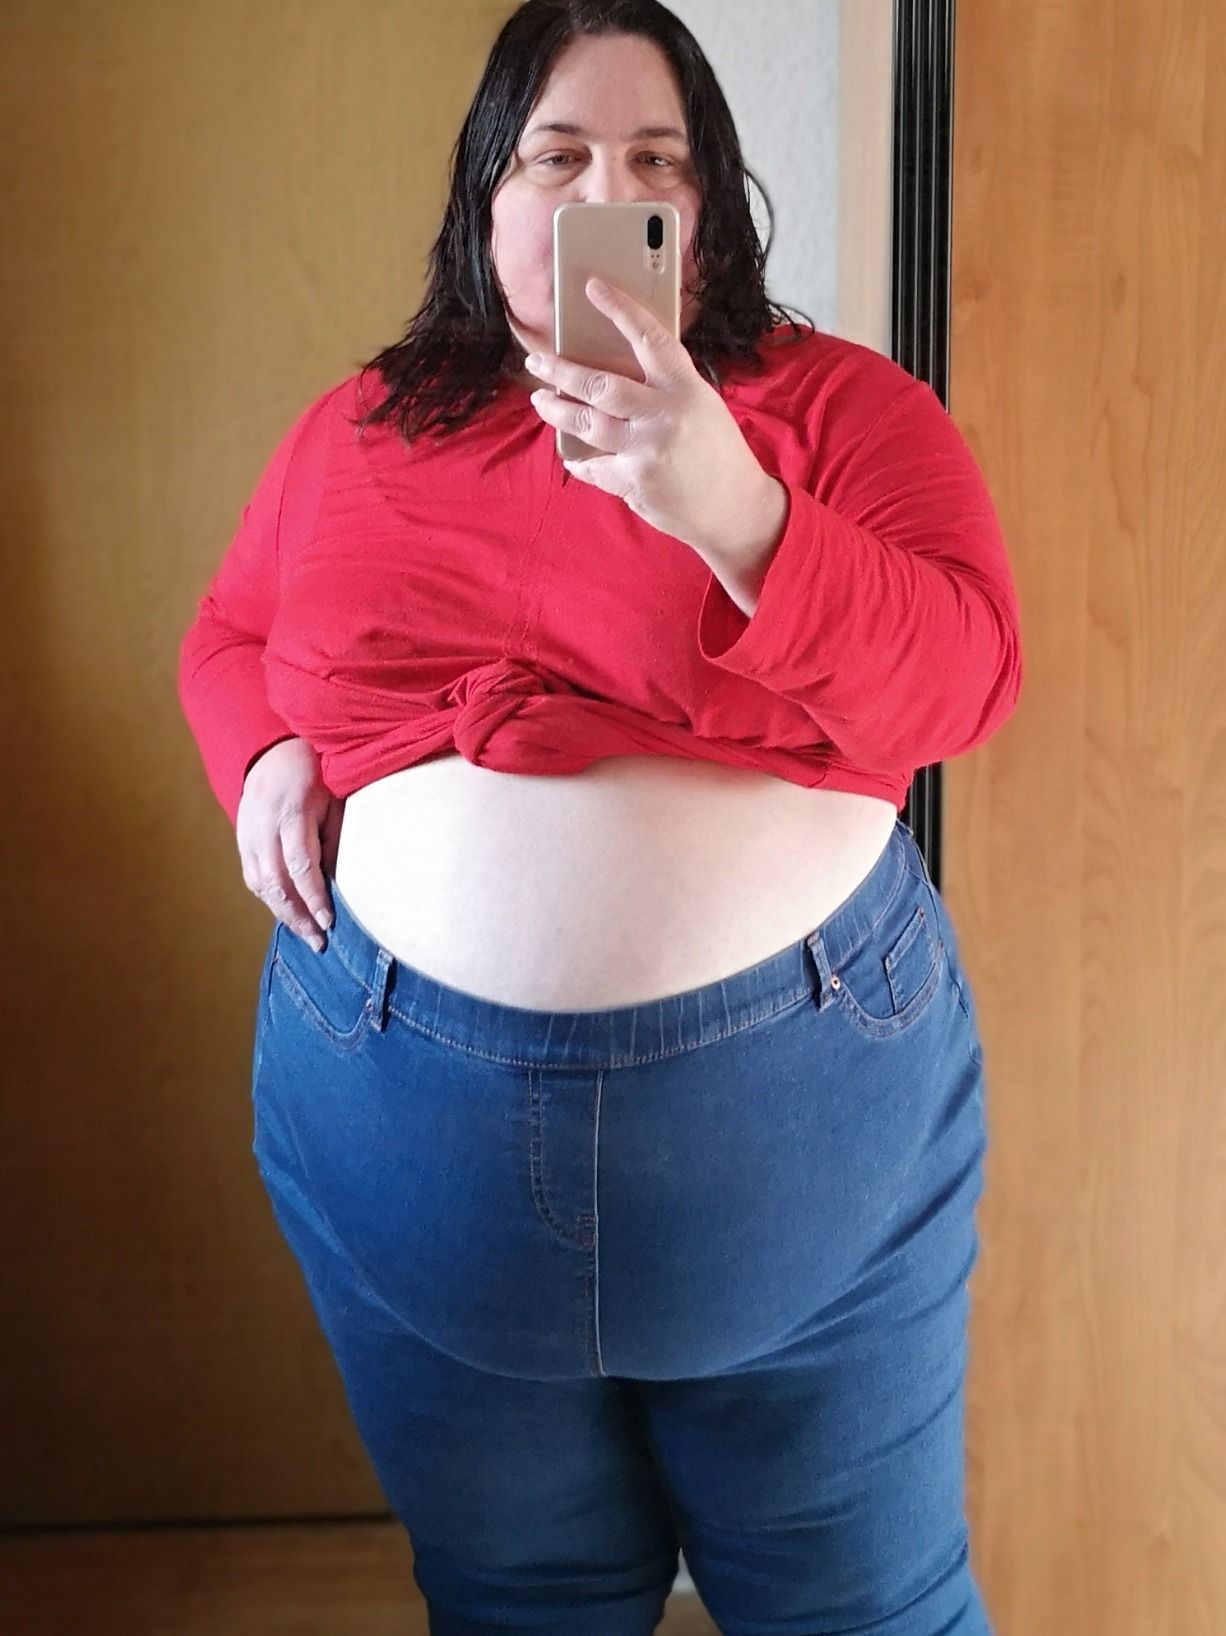 Pin by Stevepauld on Ssbbw in 2020   Crop tops, Tops, Fashion